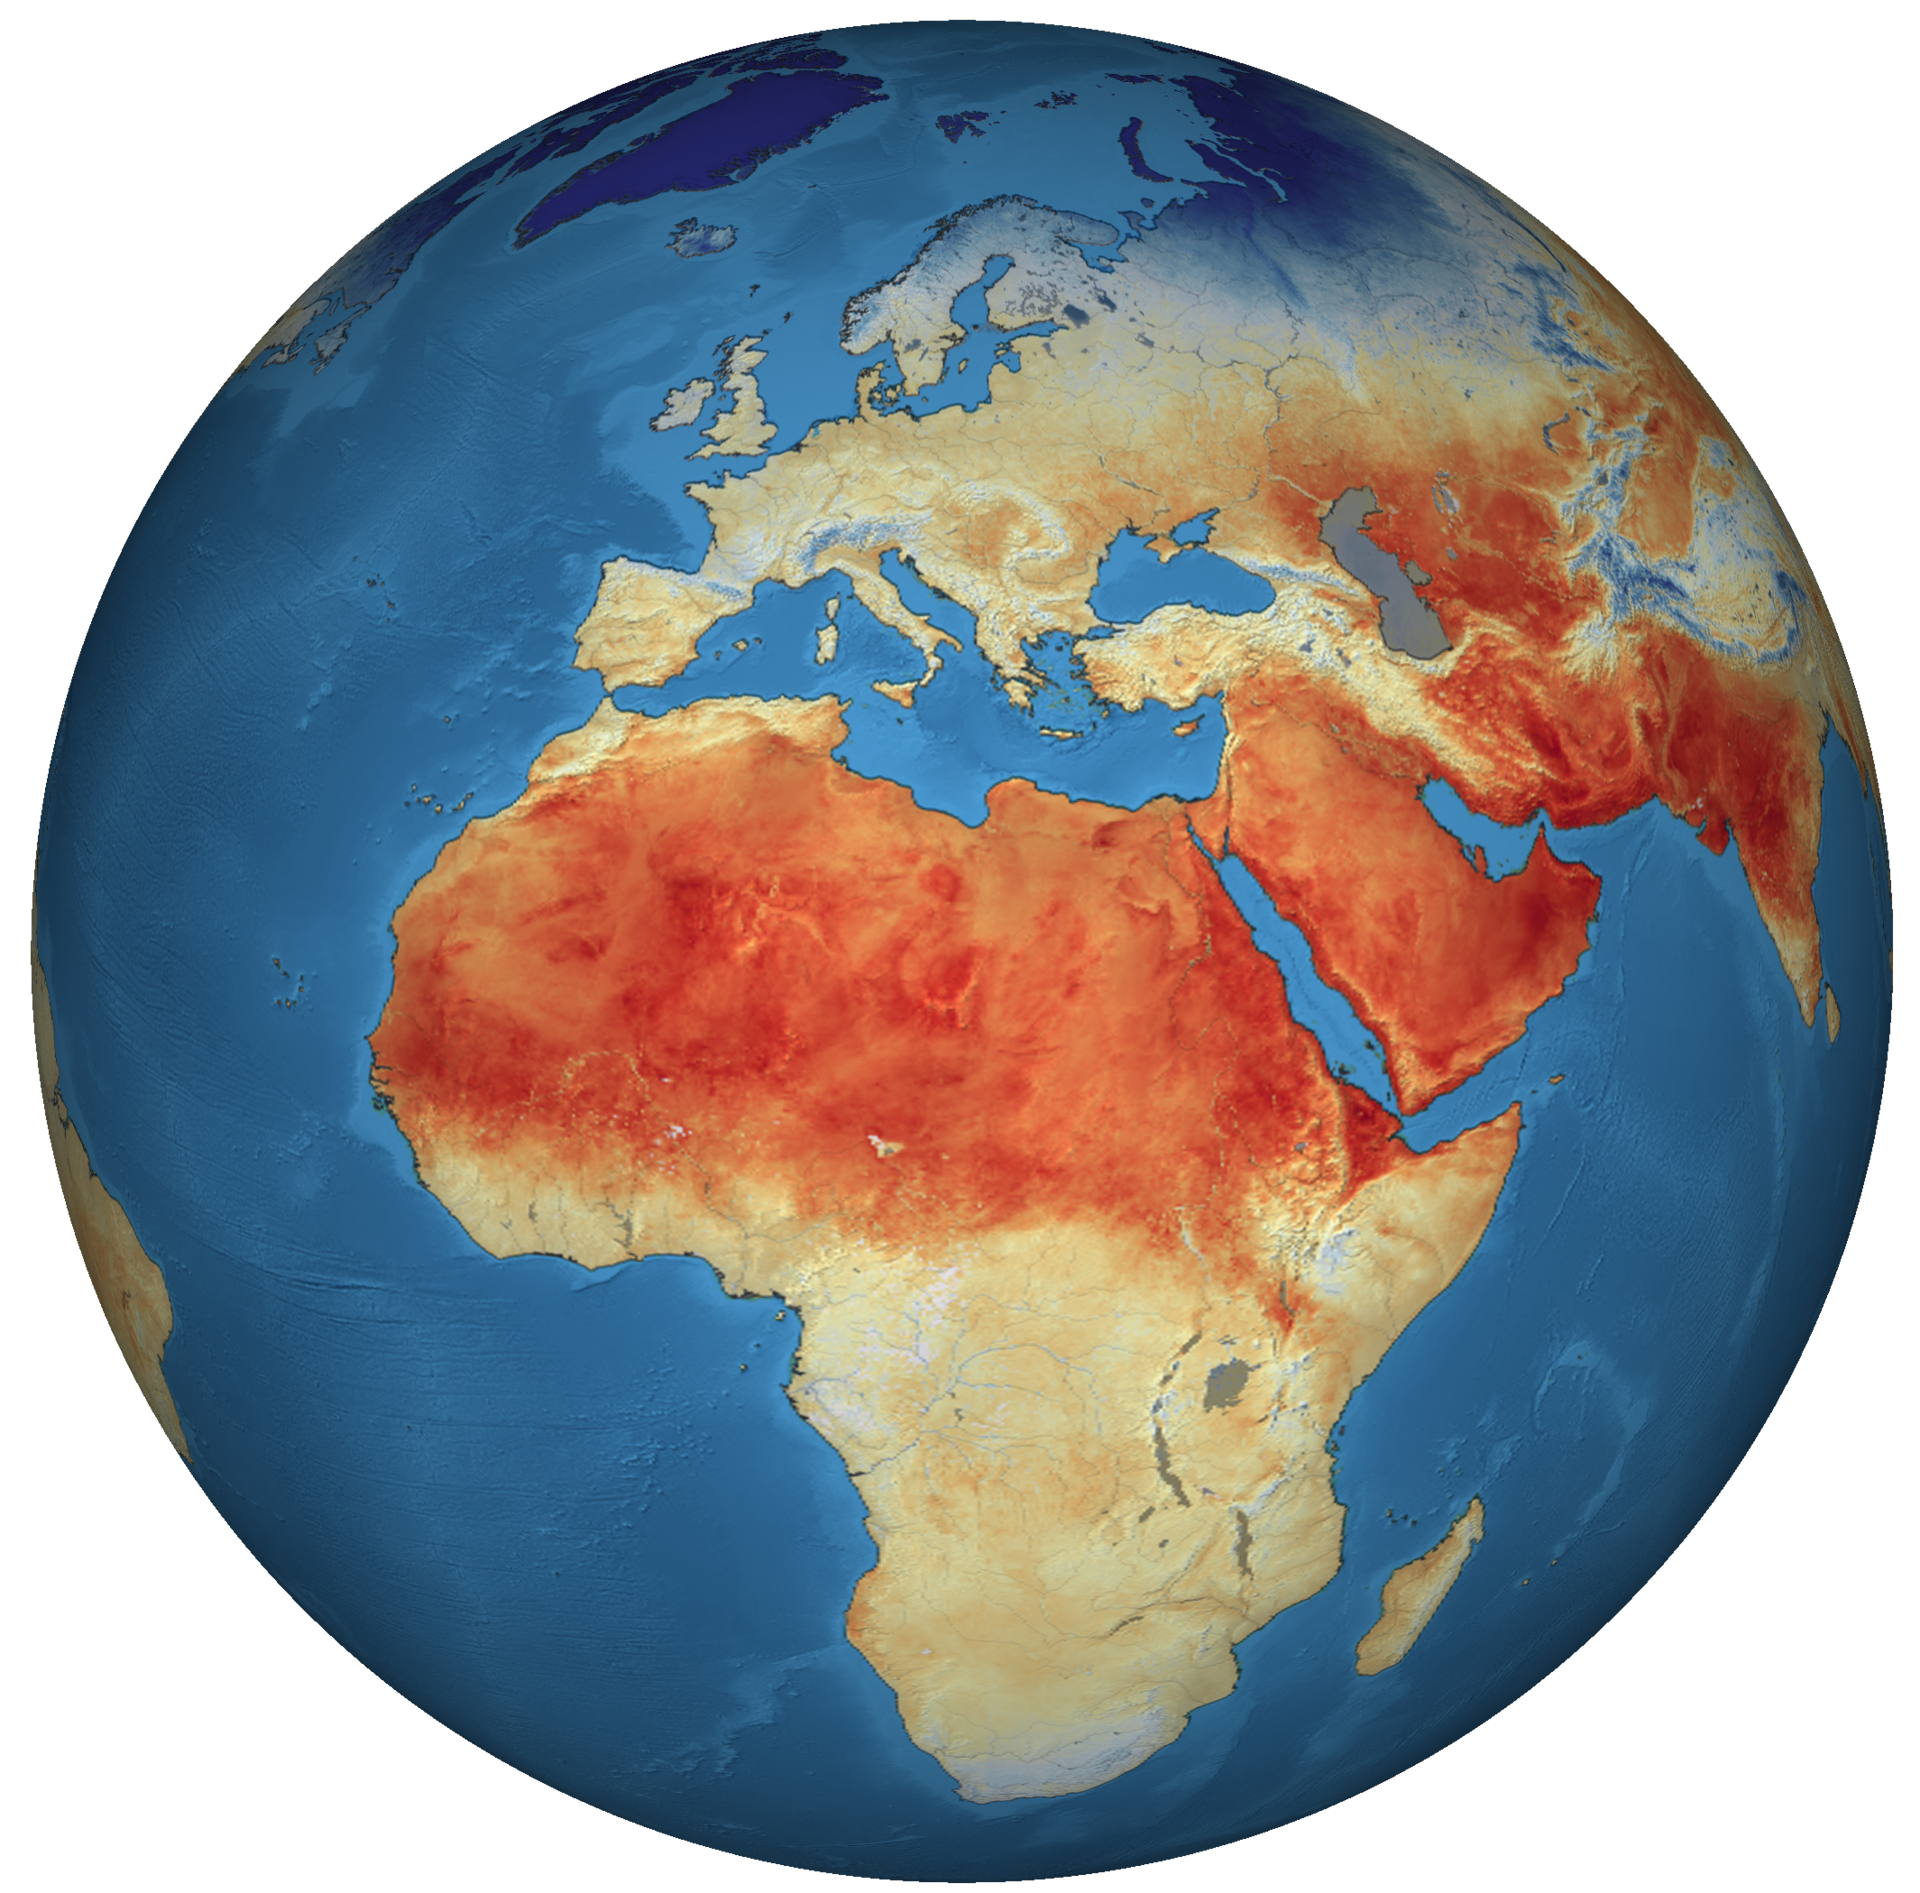 Land-surface temperature from Copernicus Sentinel-3